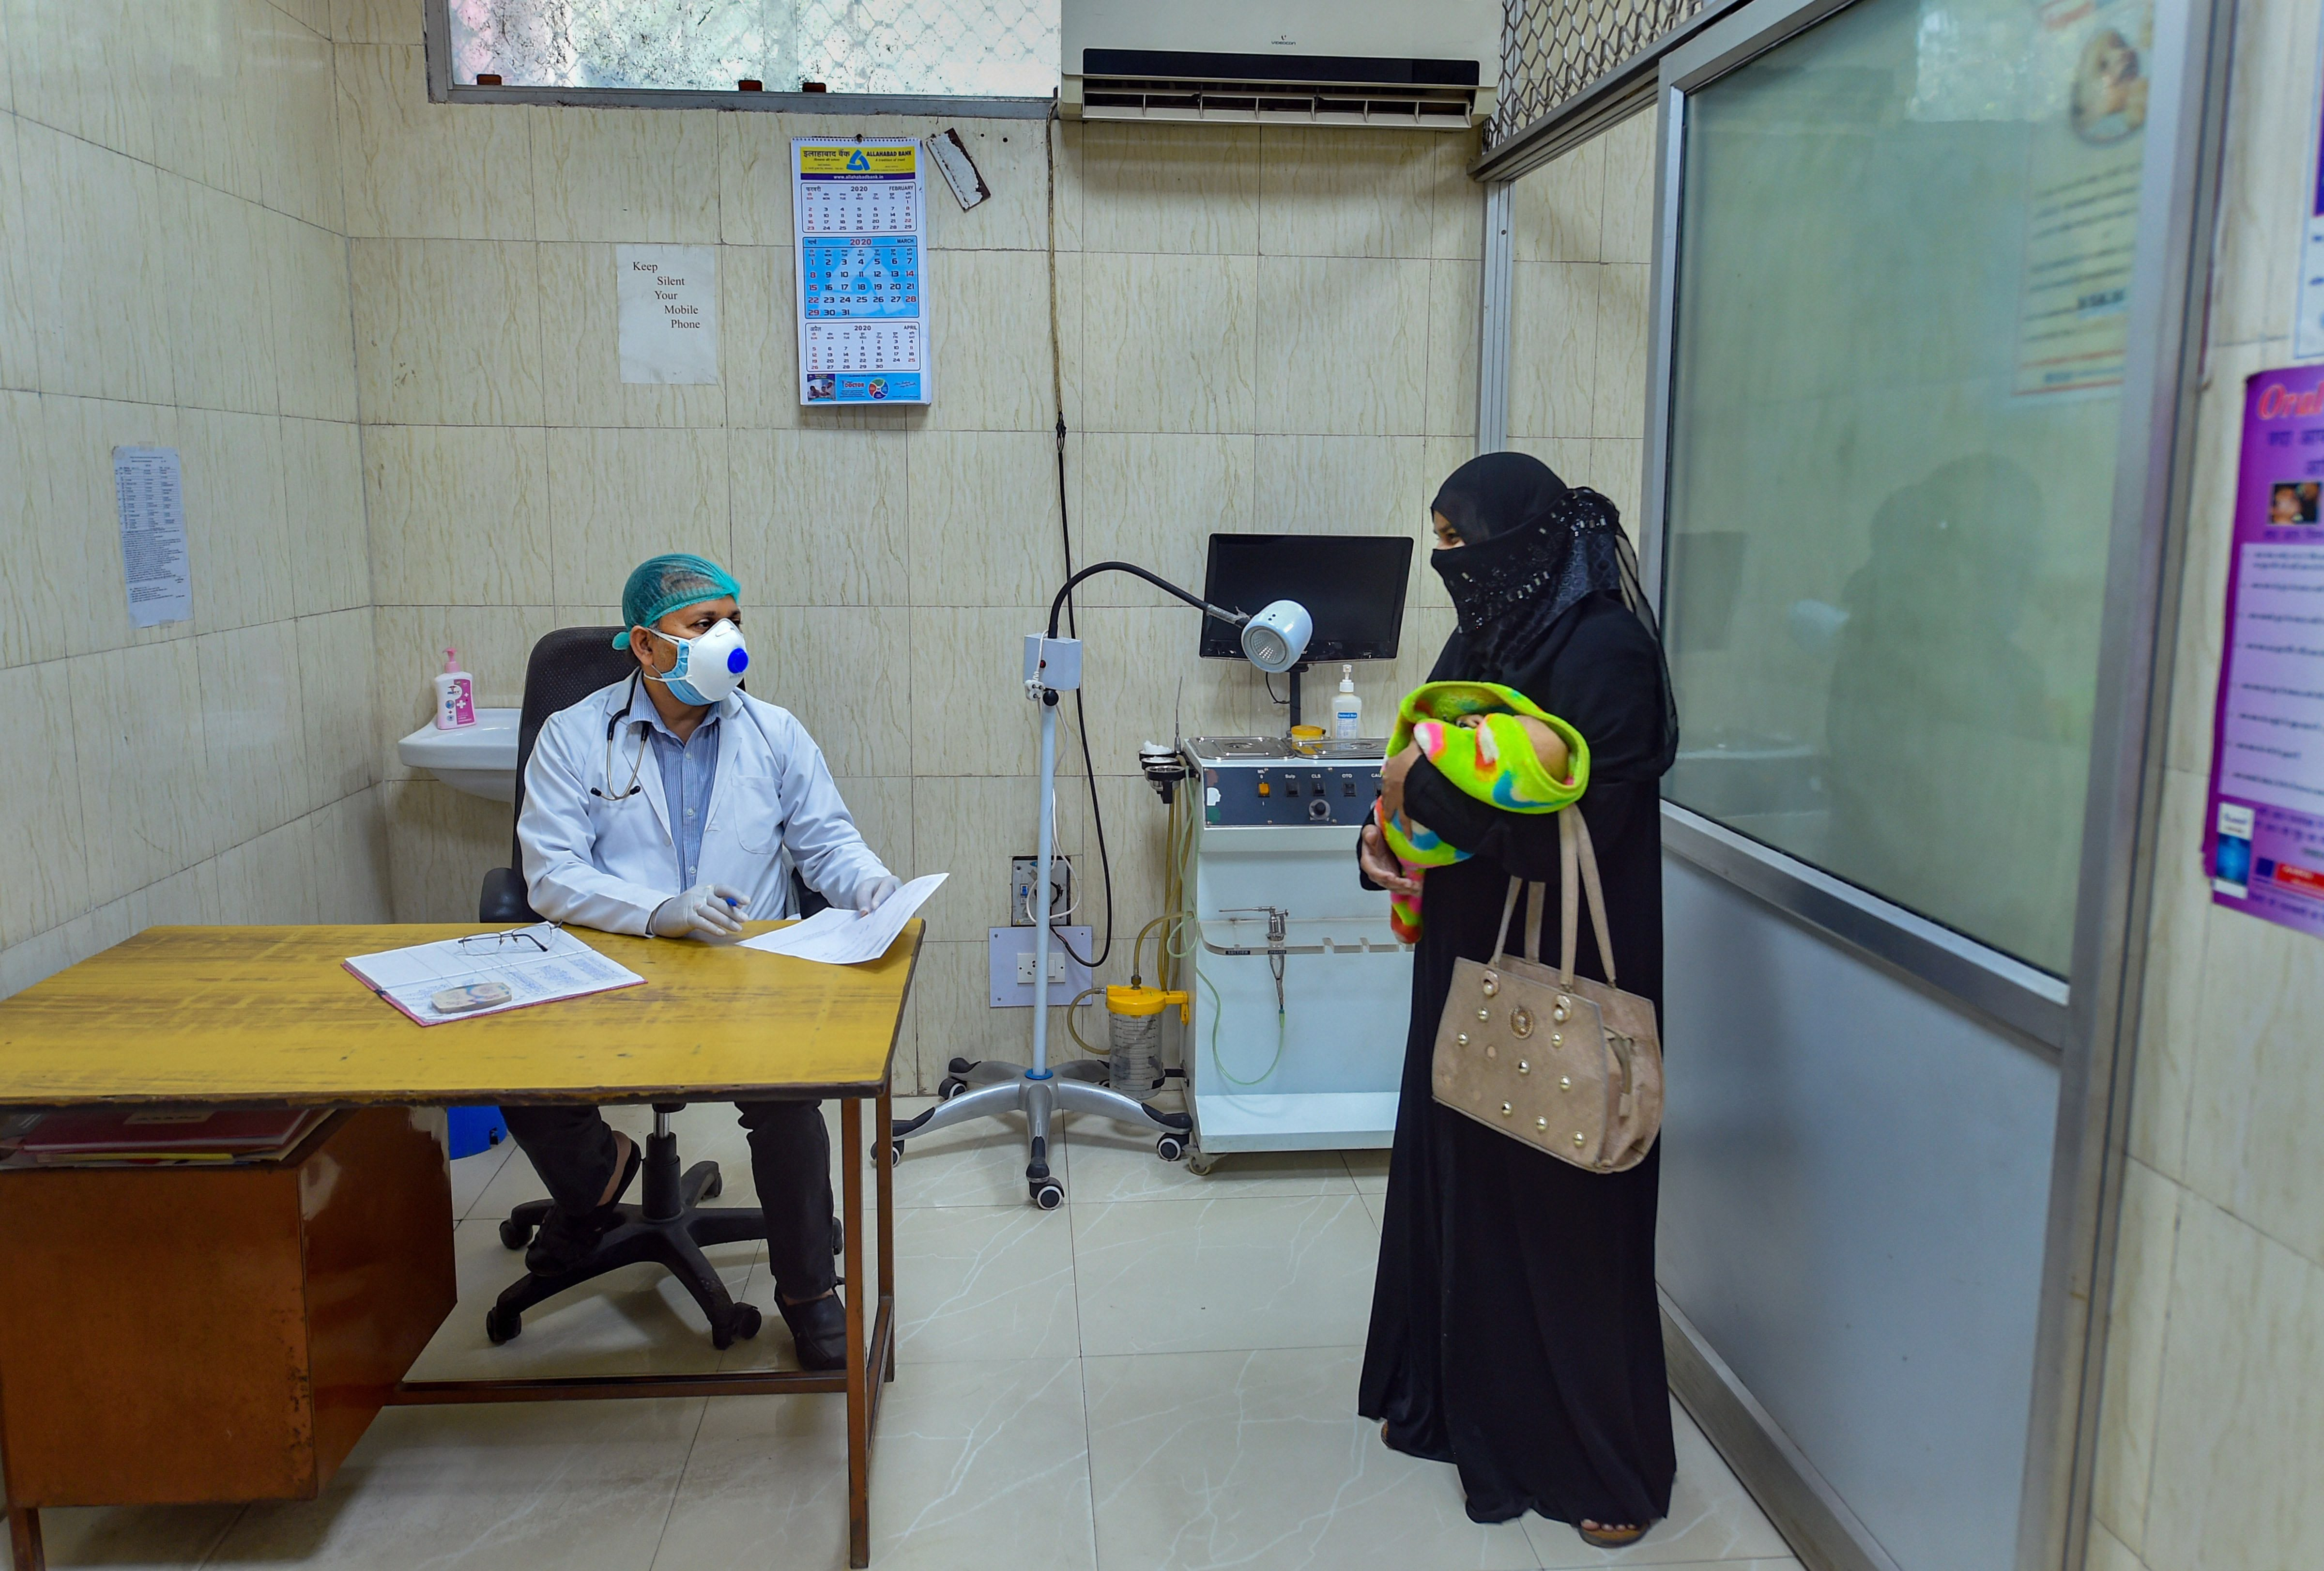 A doctor attends a patient in the Out Patients Departments (OPD) of a Civil Hospital as OPDs start functioning from today during the nationwide lockdown, in wake of the coronavirus pandemic, in Lucknow, Tuesday, April 21, 2020.